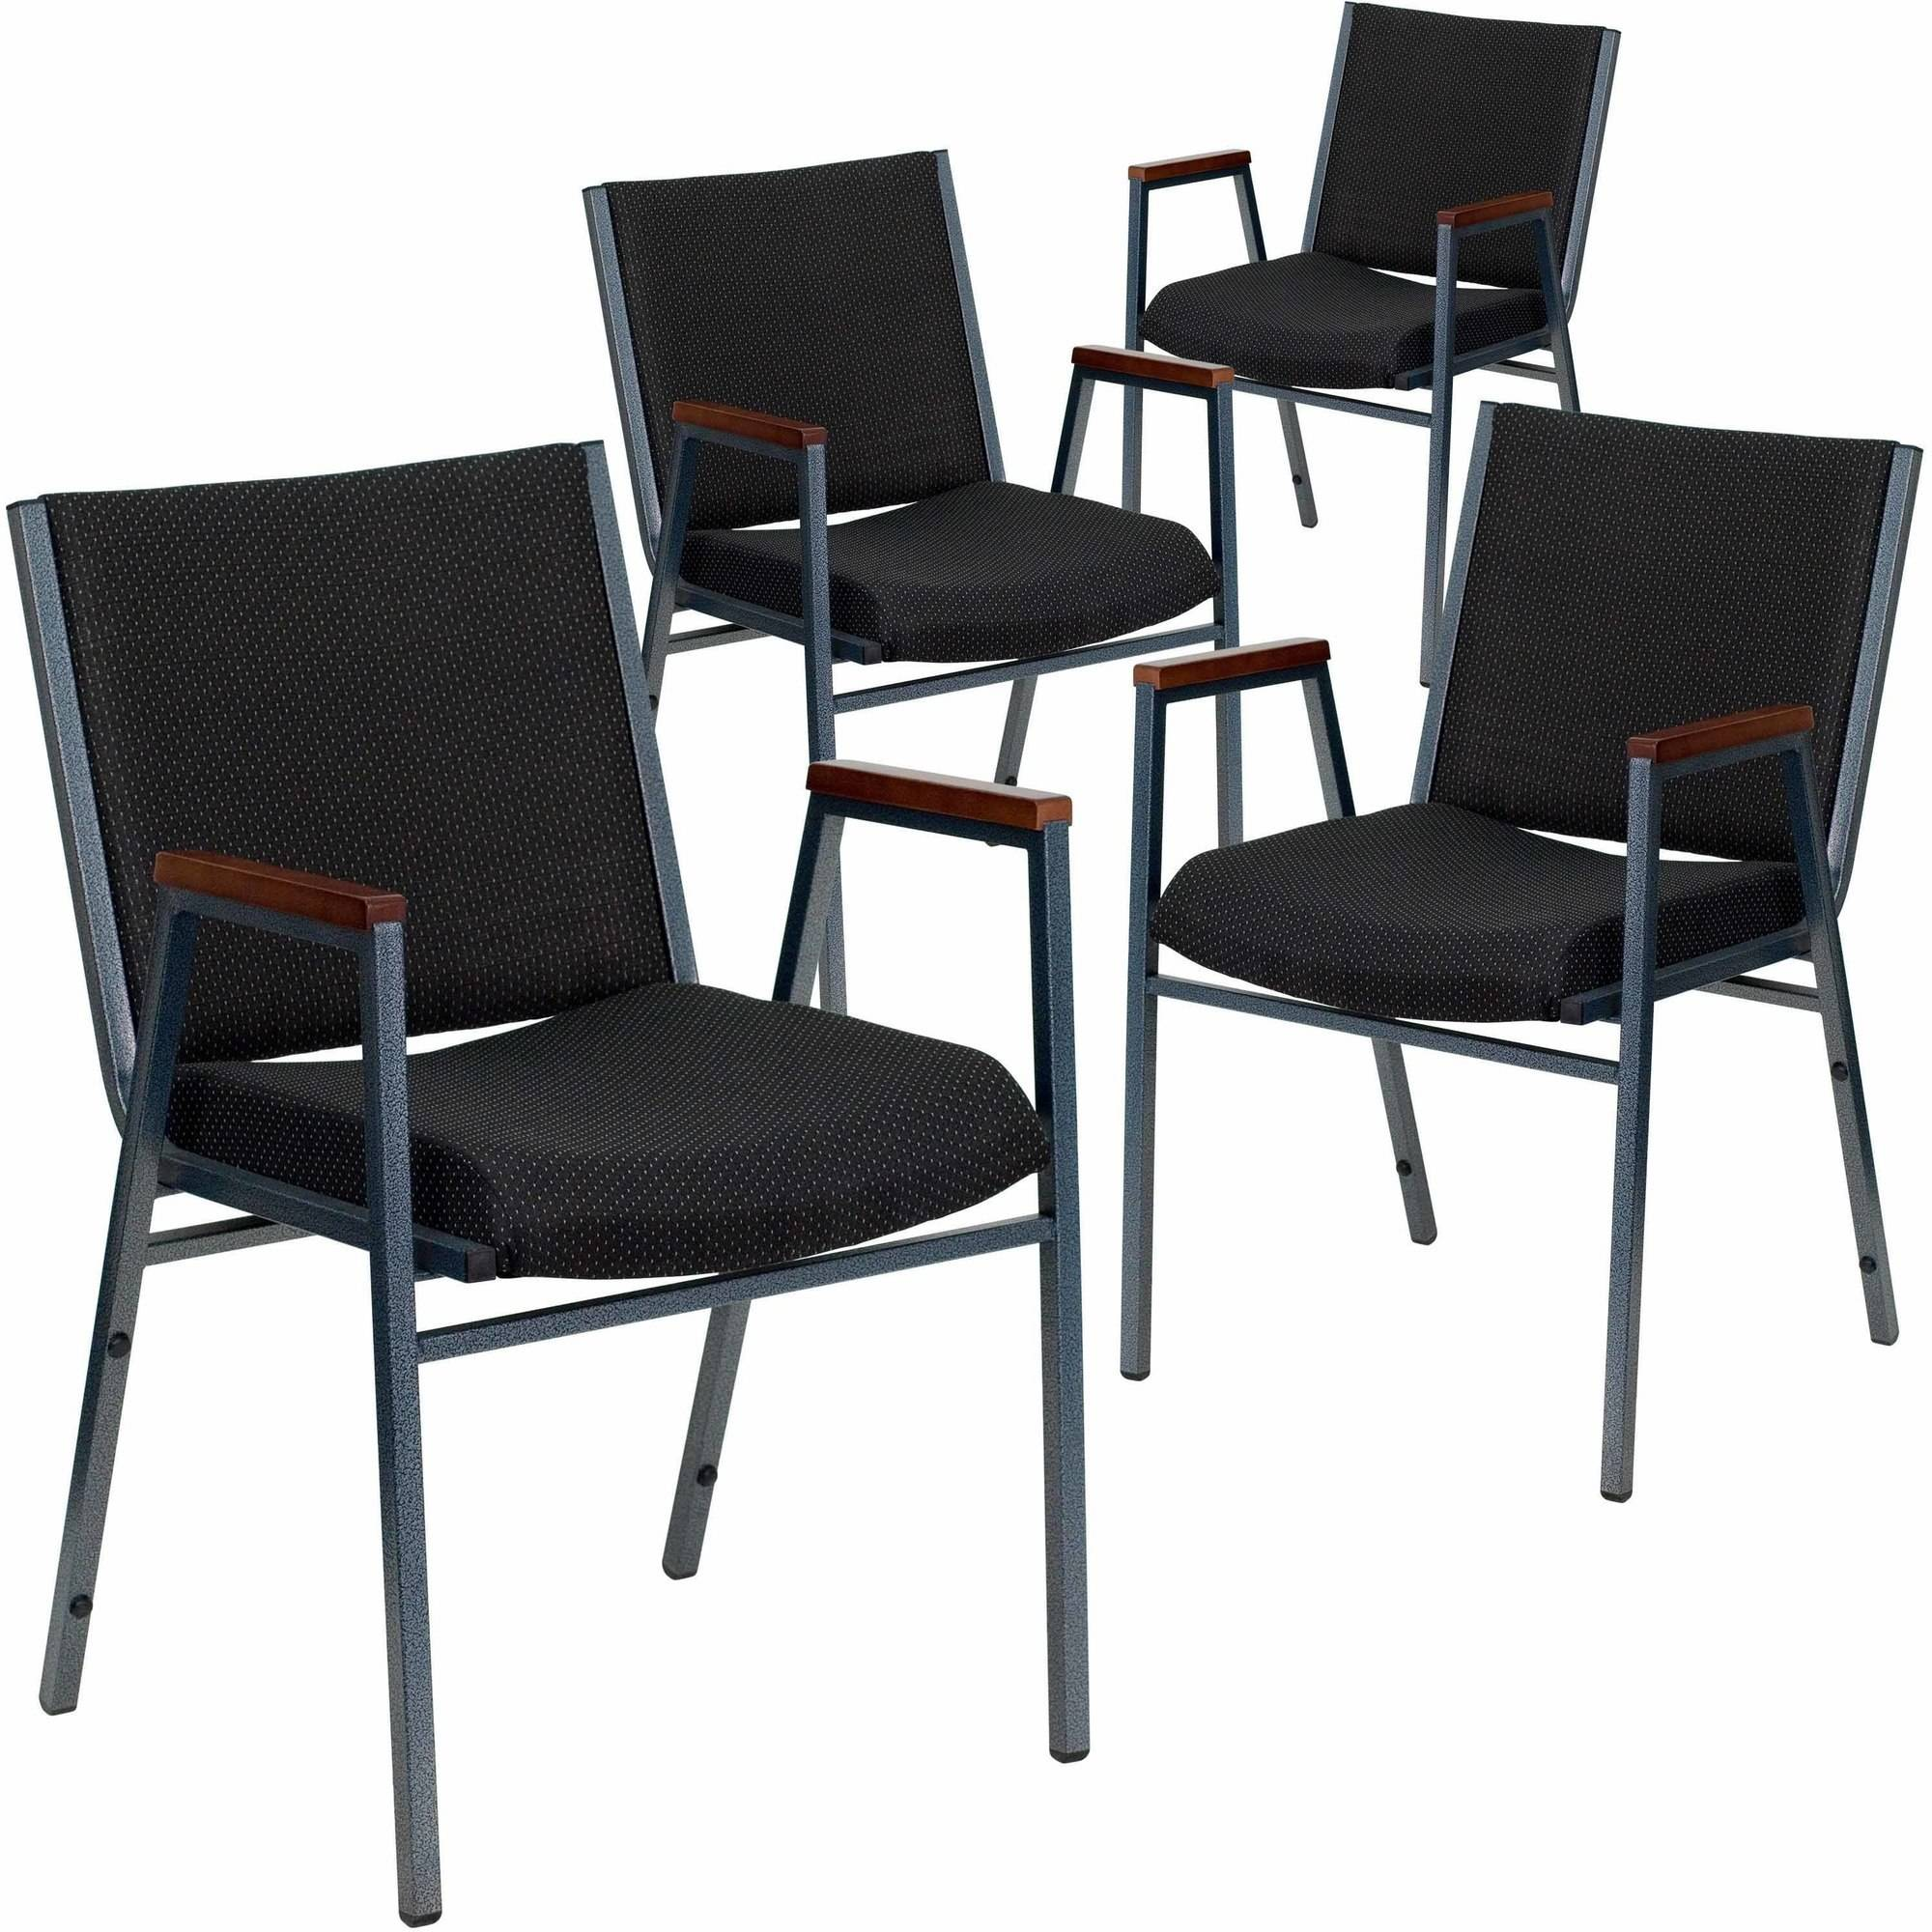 """Flash Furniture 4-Pack HERCULES Series Heavy Duty, 3"""" Thickly Padded, Patterned Upholstered Stack Chair with Arms, Multiple Colors"""